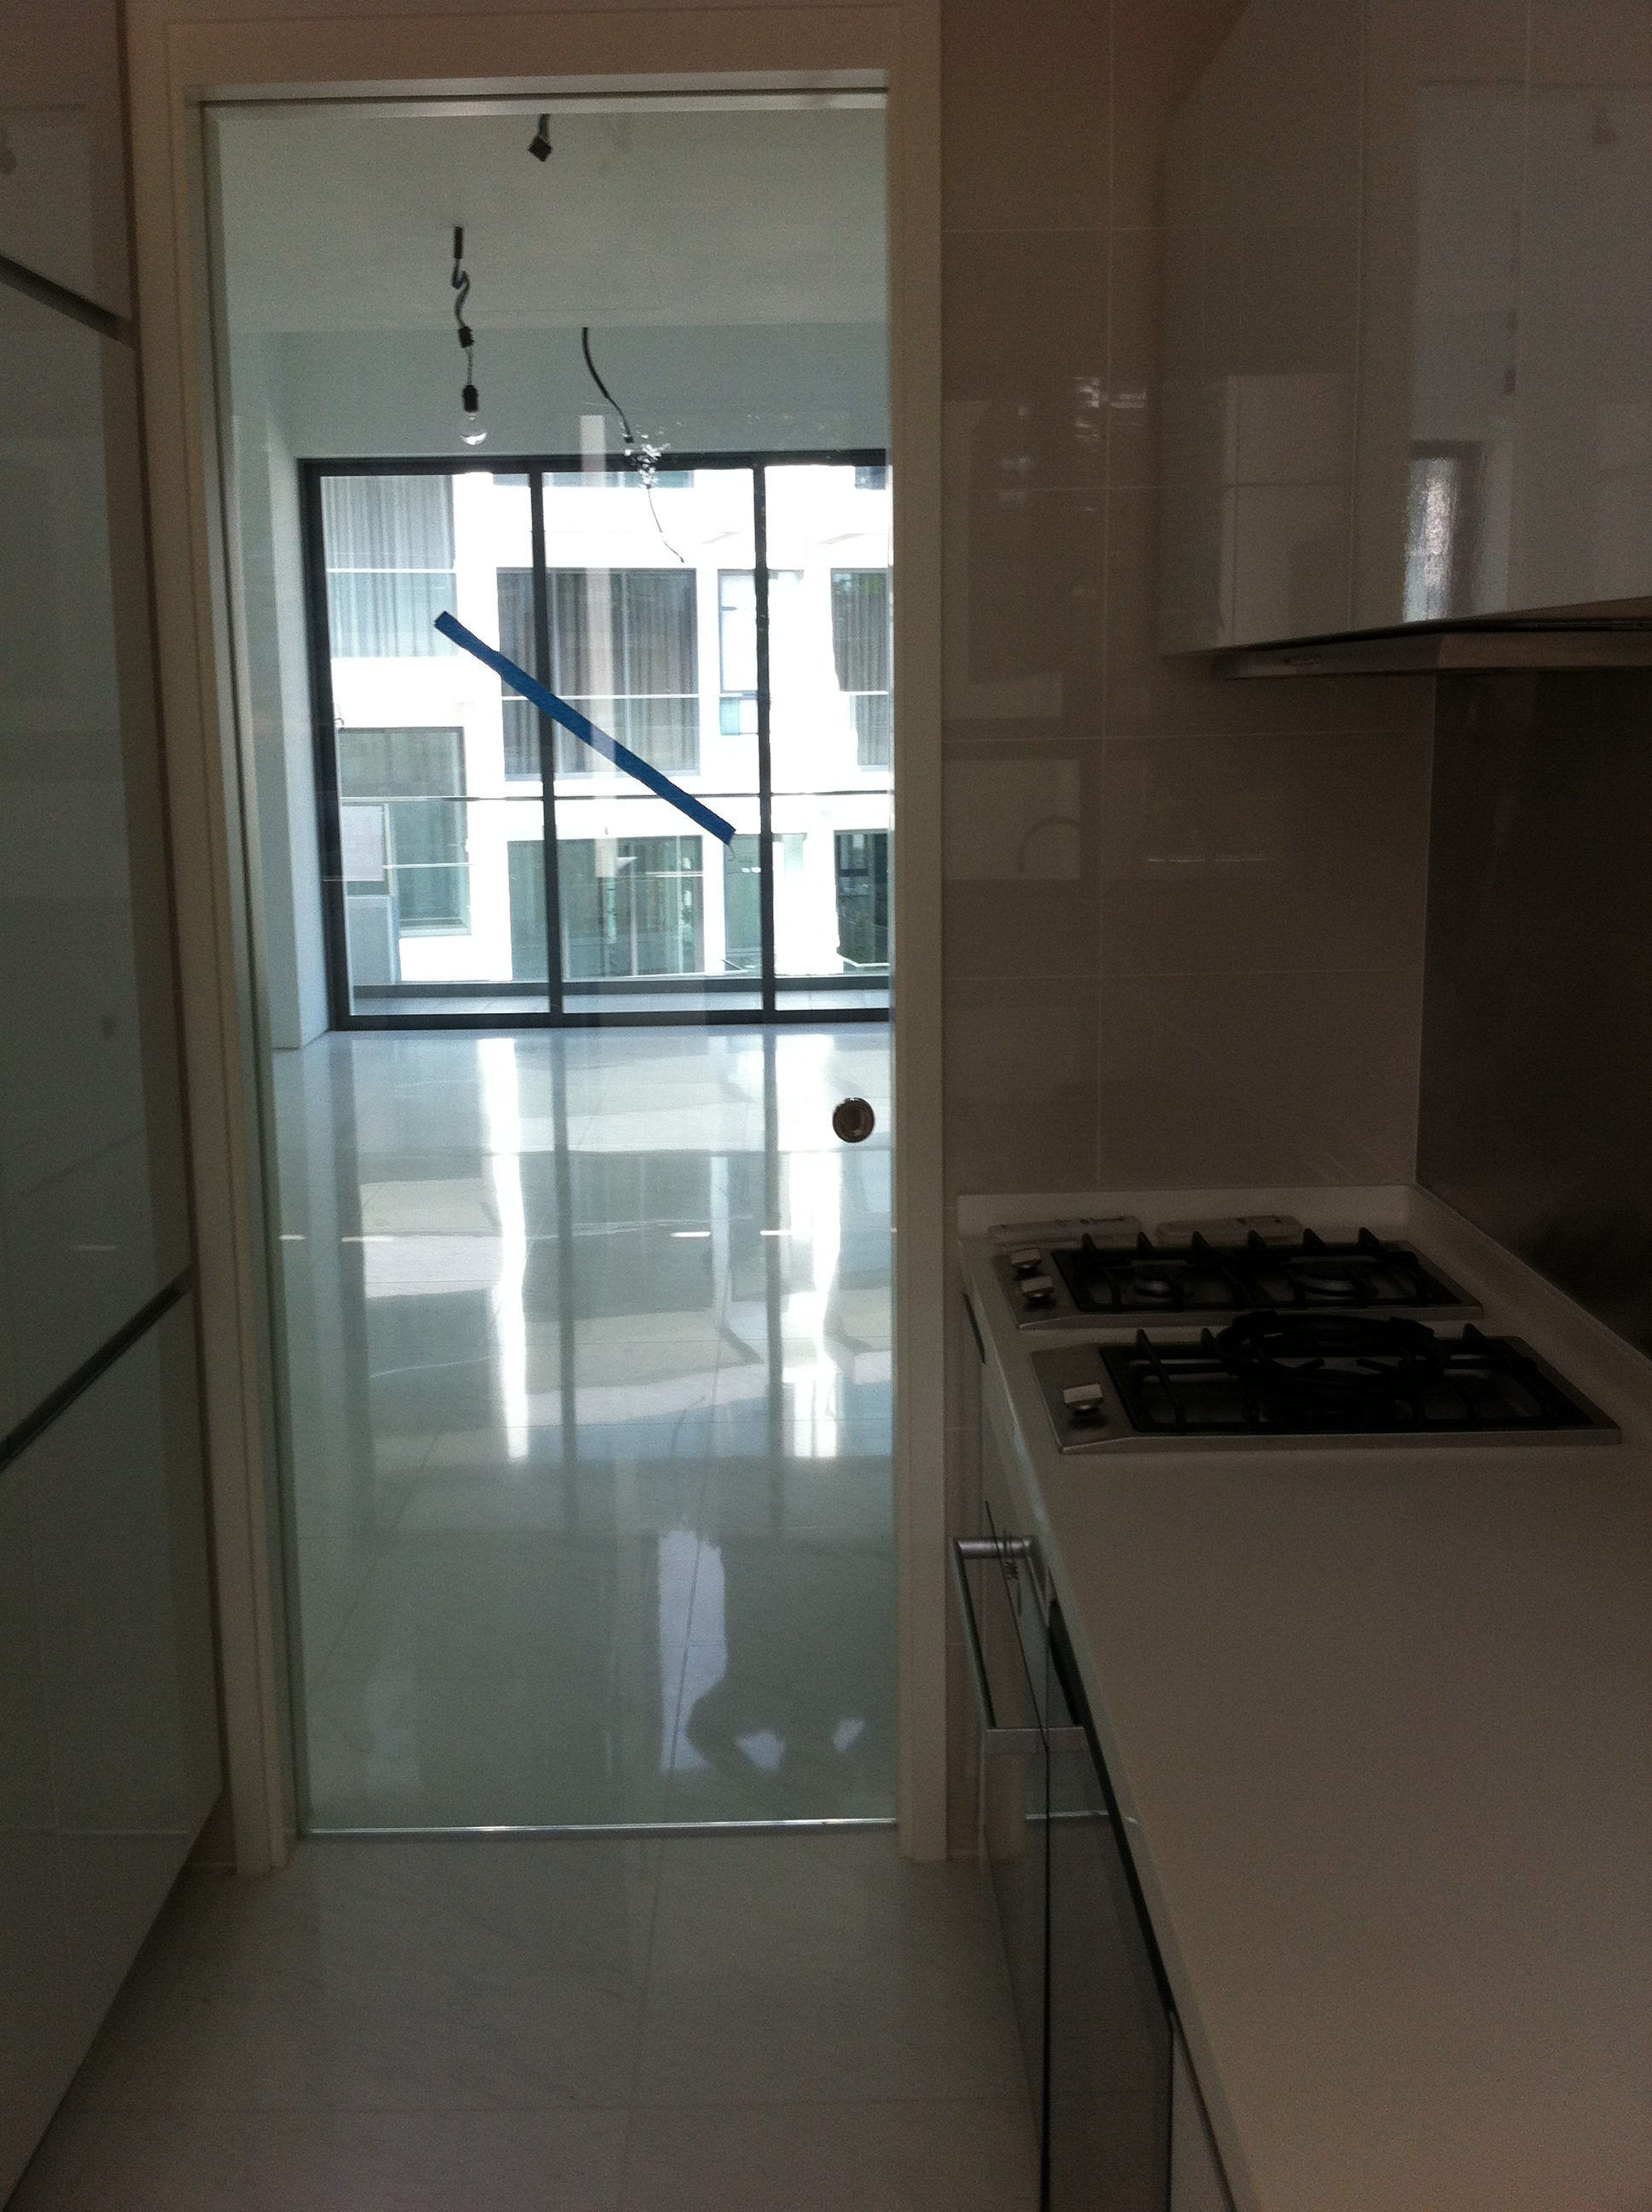 Holland residences reflections at keppel bay villa for sale for Sliding glass doors kitchen